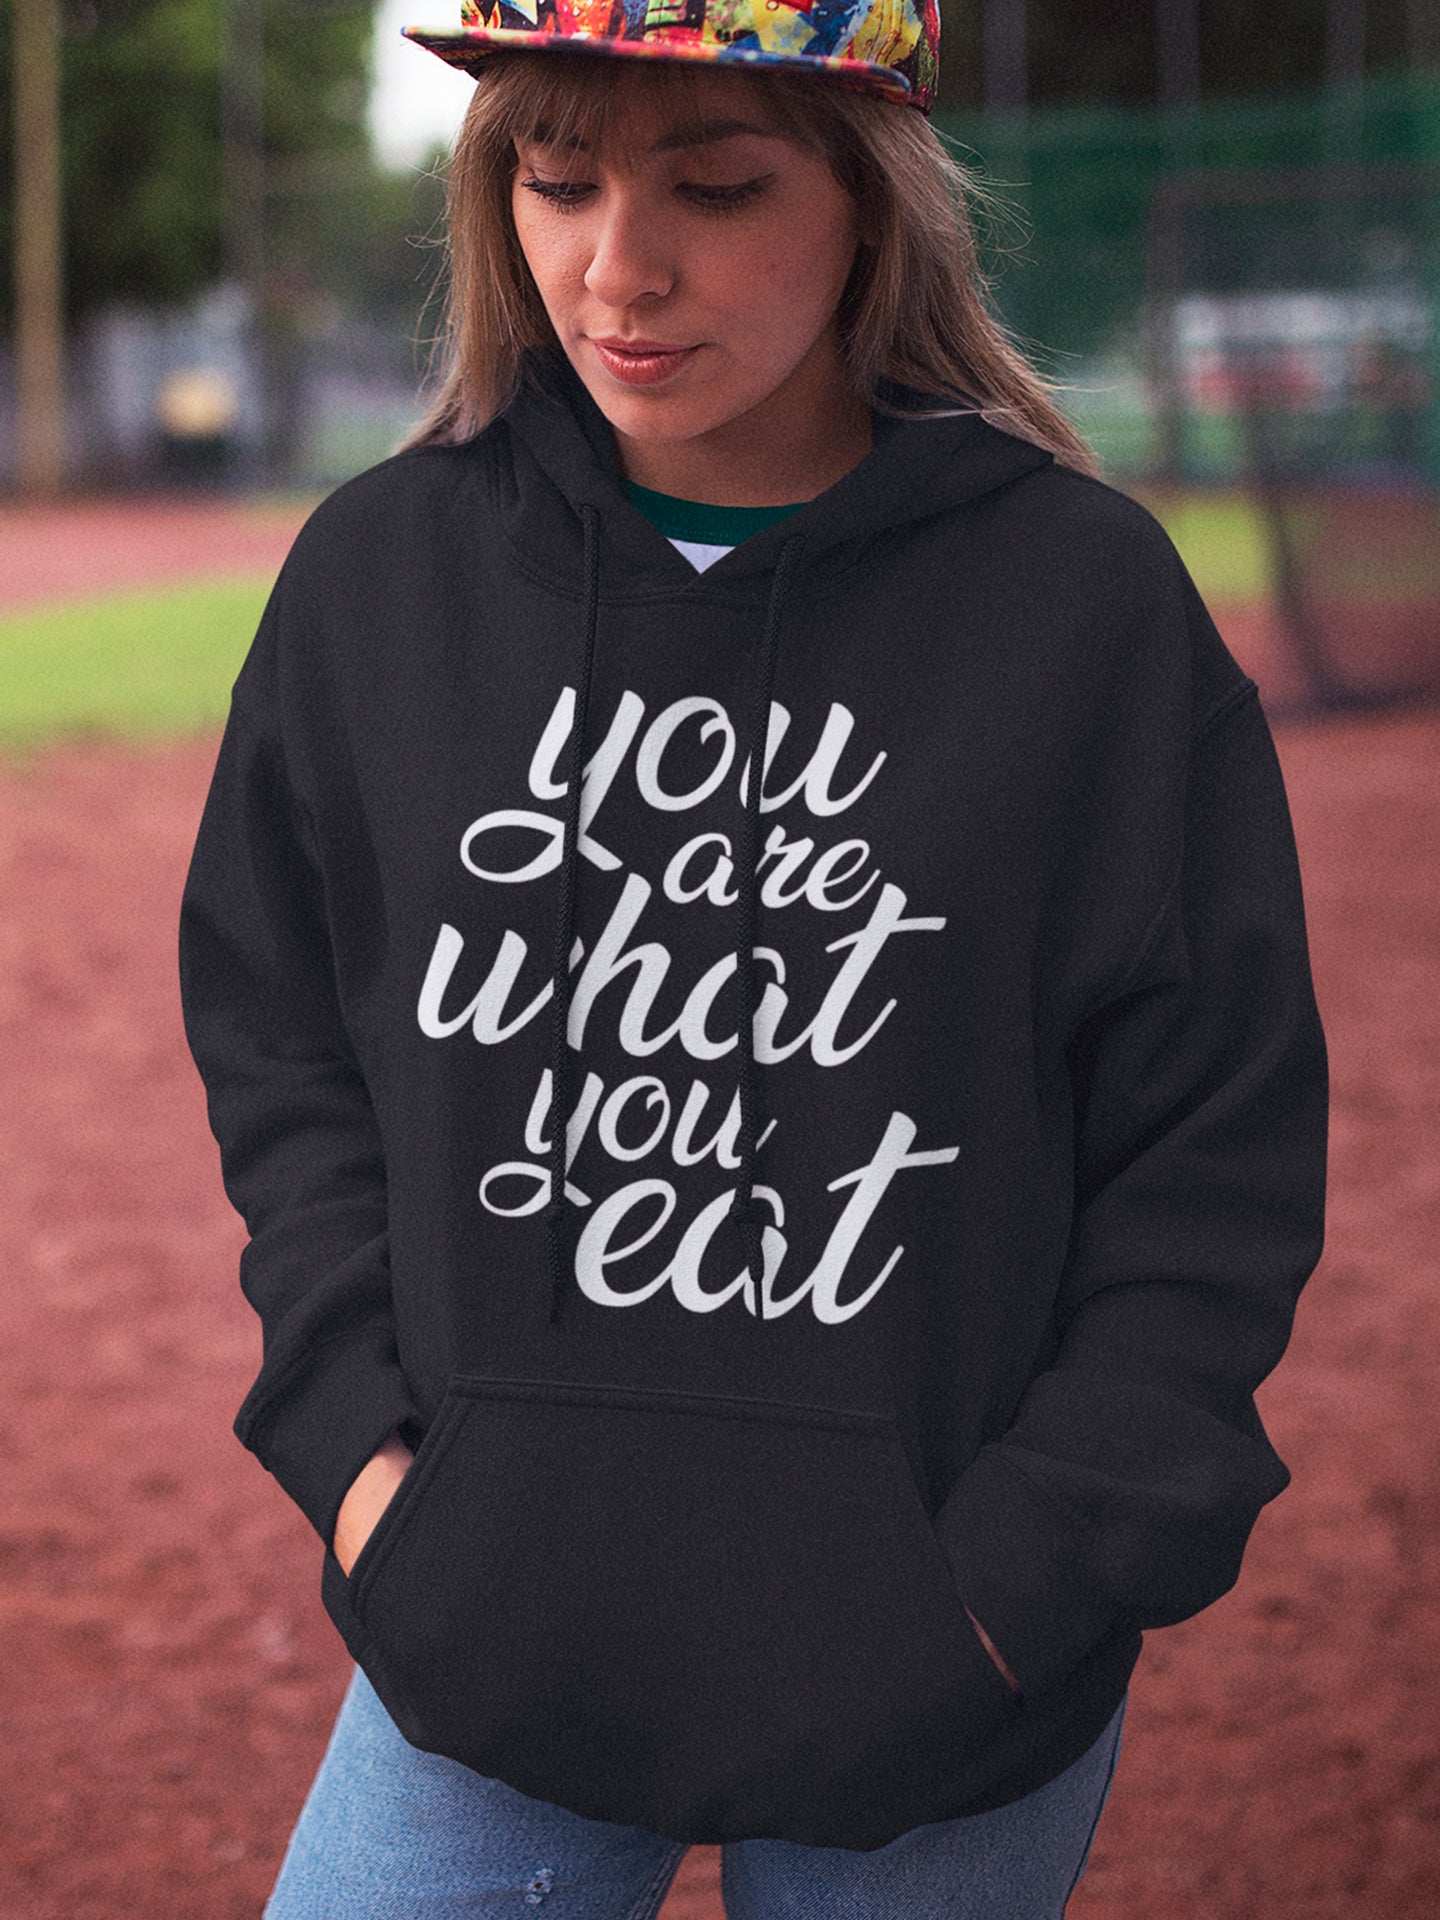 You are what you eat - Woman's vegan hoodie